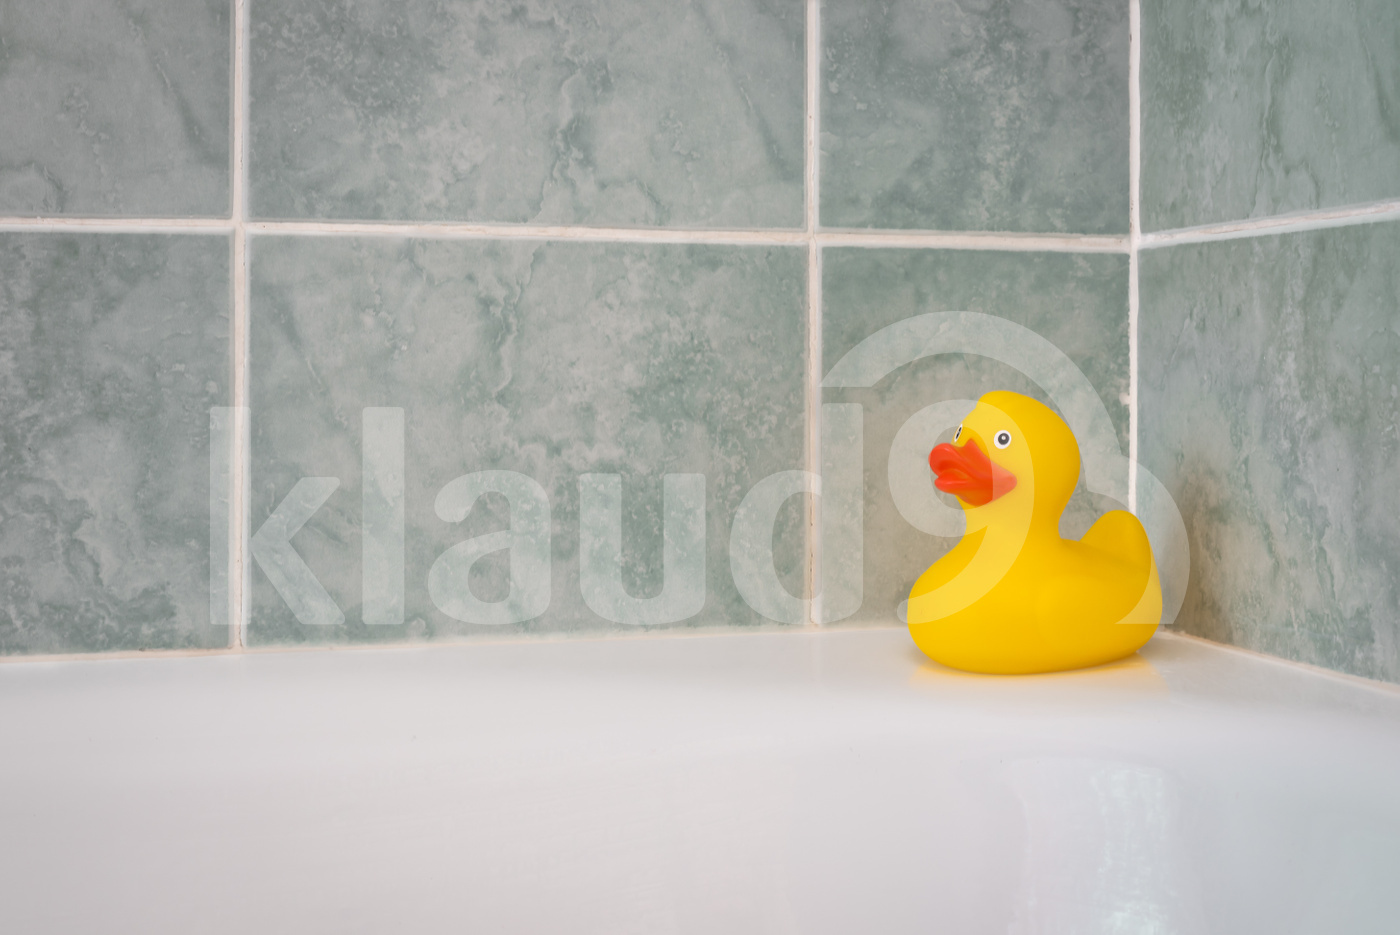 Yellow rubber duck in the bathroom